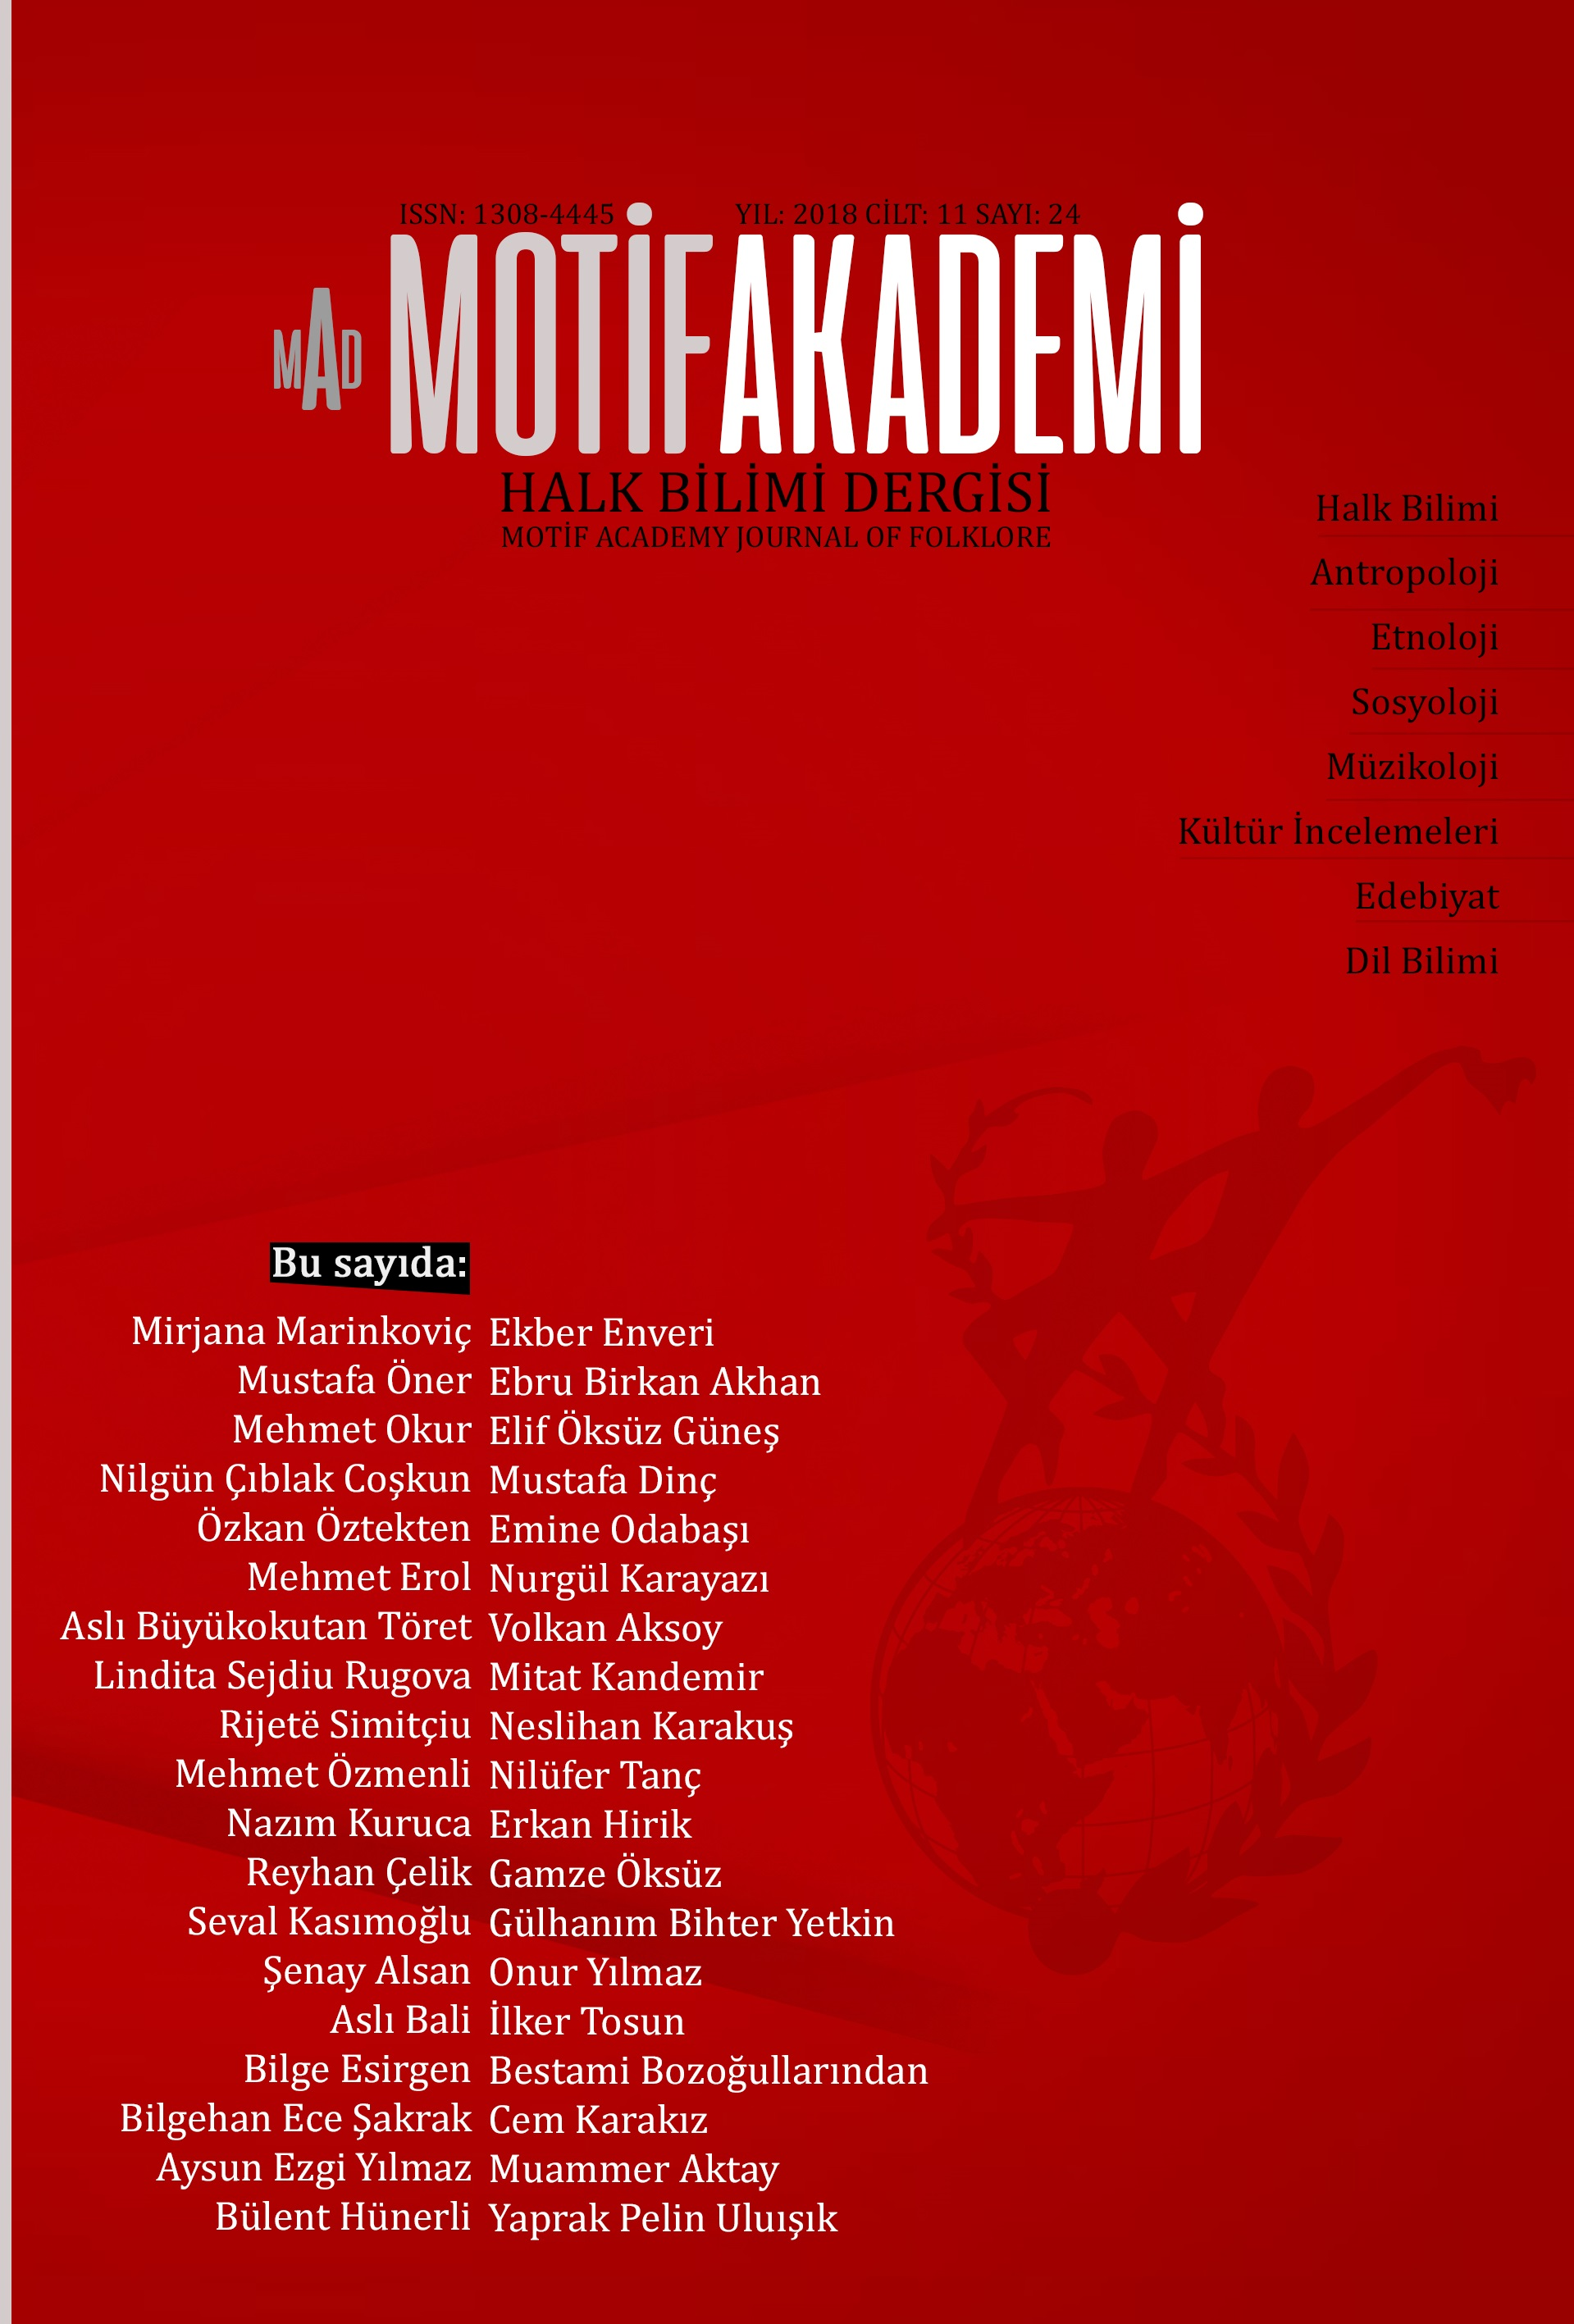 WORD ORDER IN ALBANIAN, TURKISH AND ENGLISH-A PRAGMATICALLY ORIENTED RESEARCH